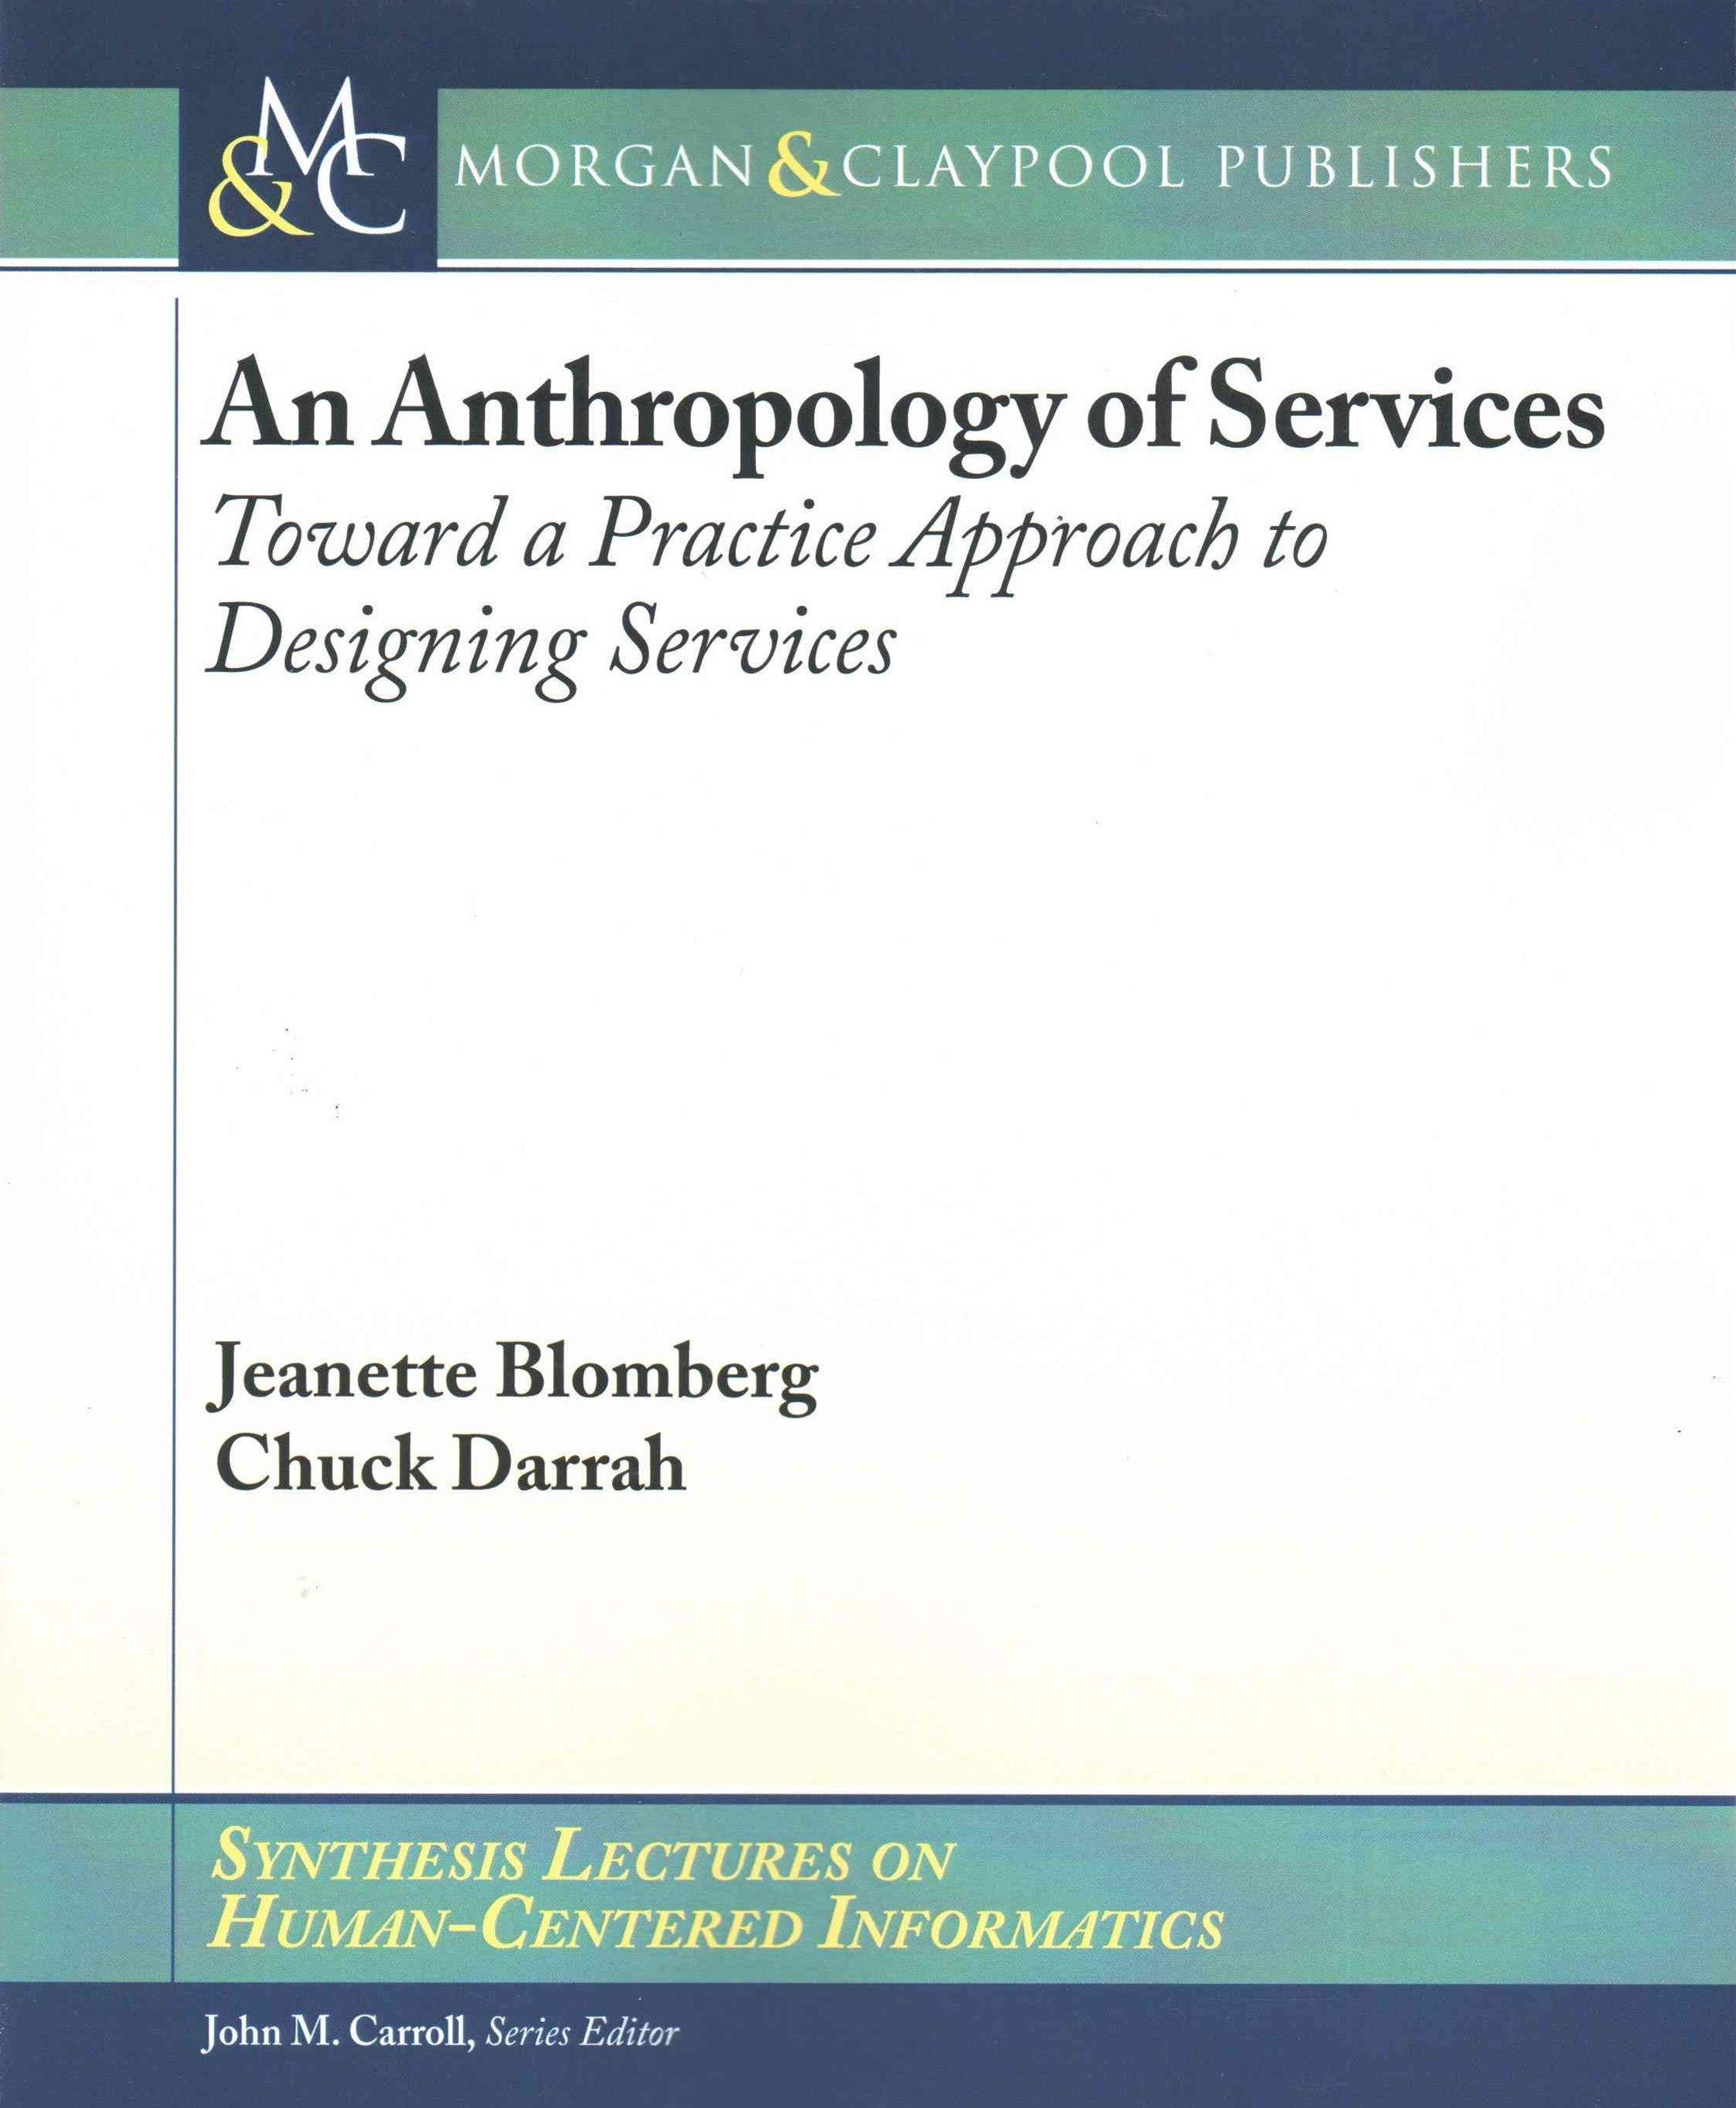 Toward a Practice Approach to Designing Services